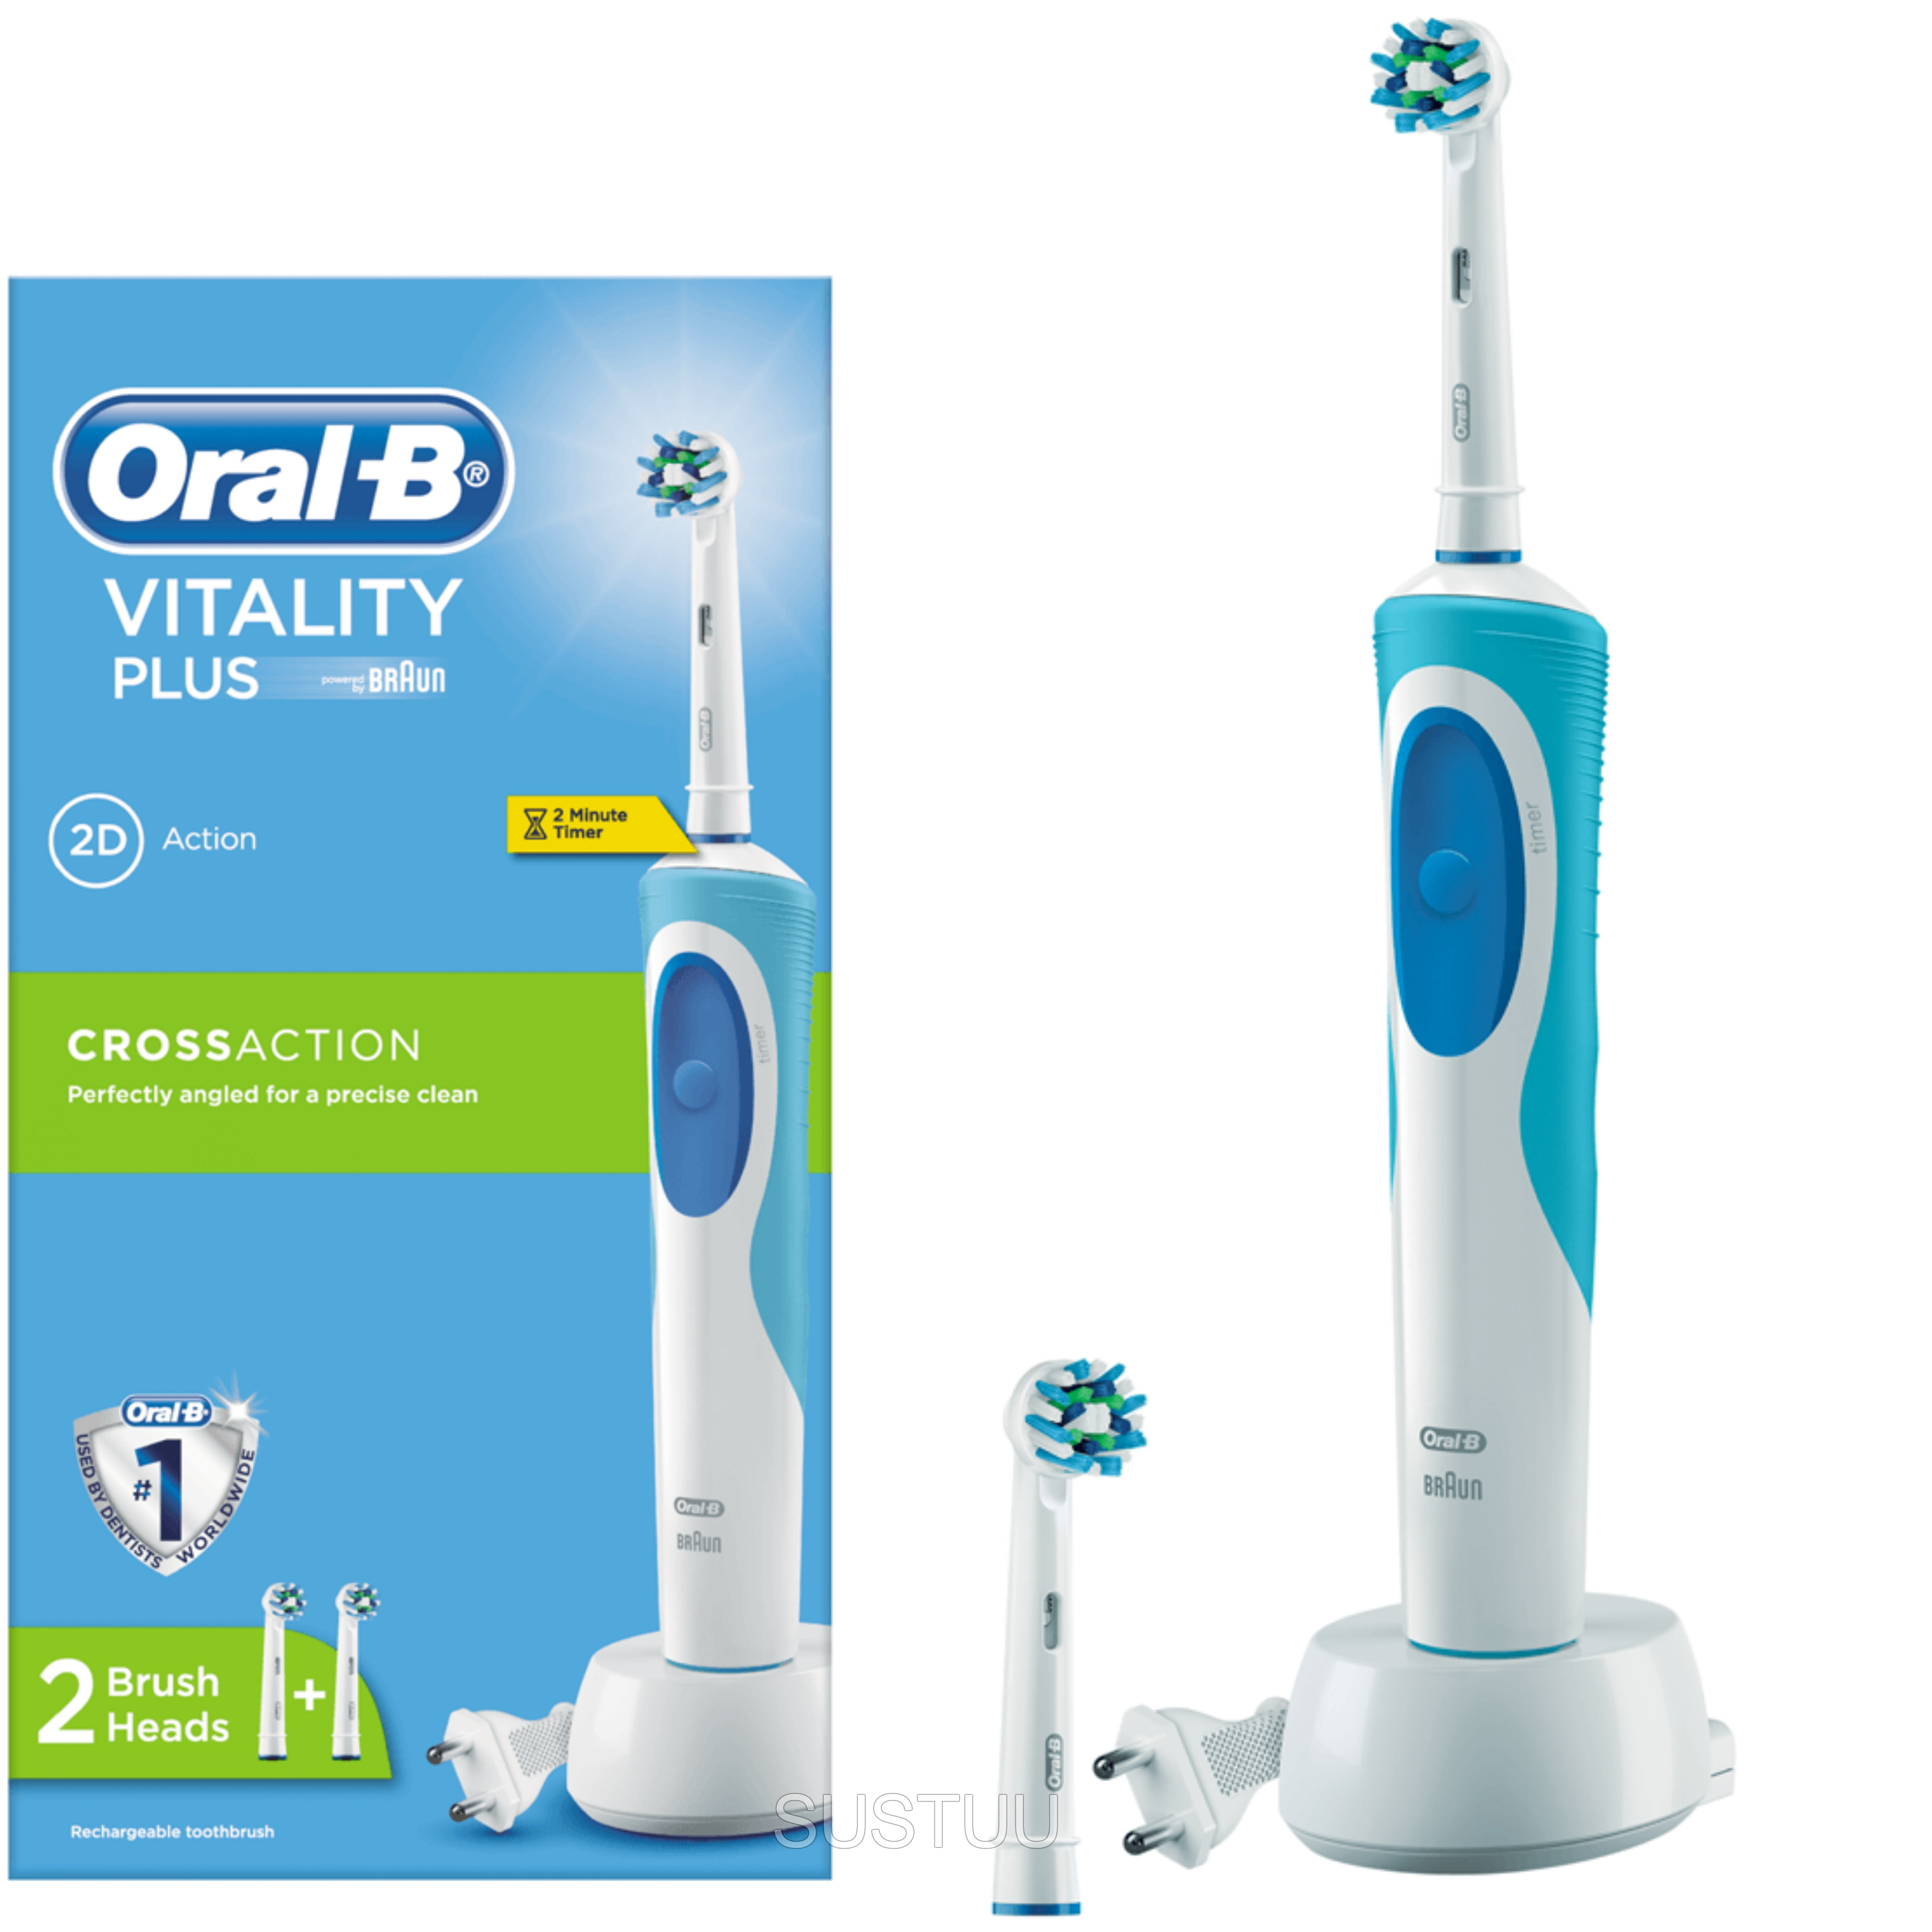 Oral-B Vitality Plus Electric Rechargeable Toothbrush | 2 Cross Action Brush Heads